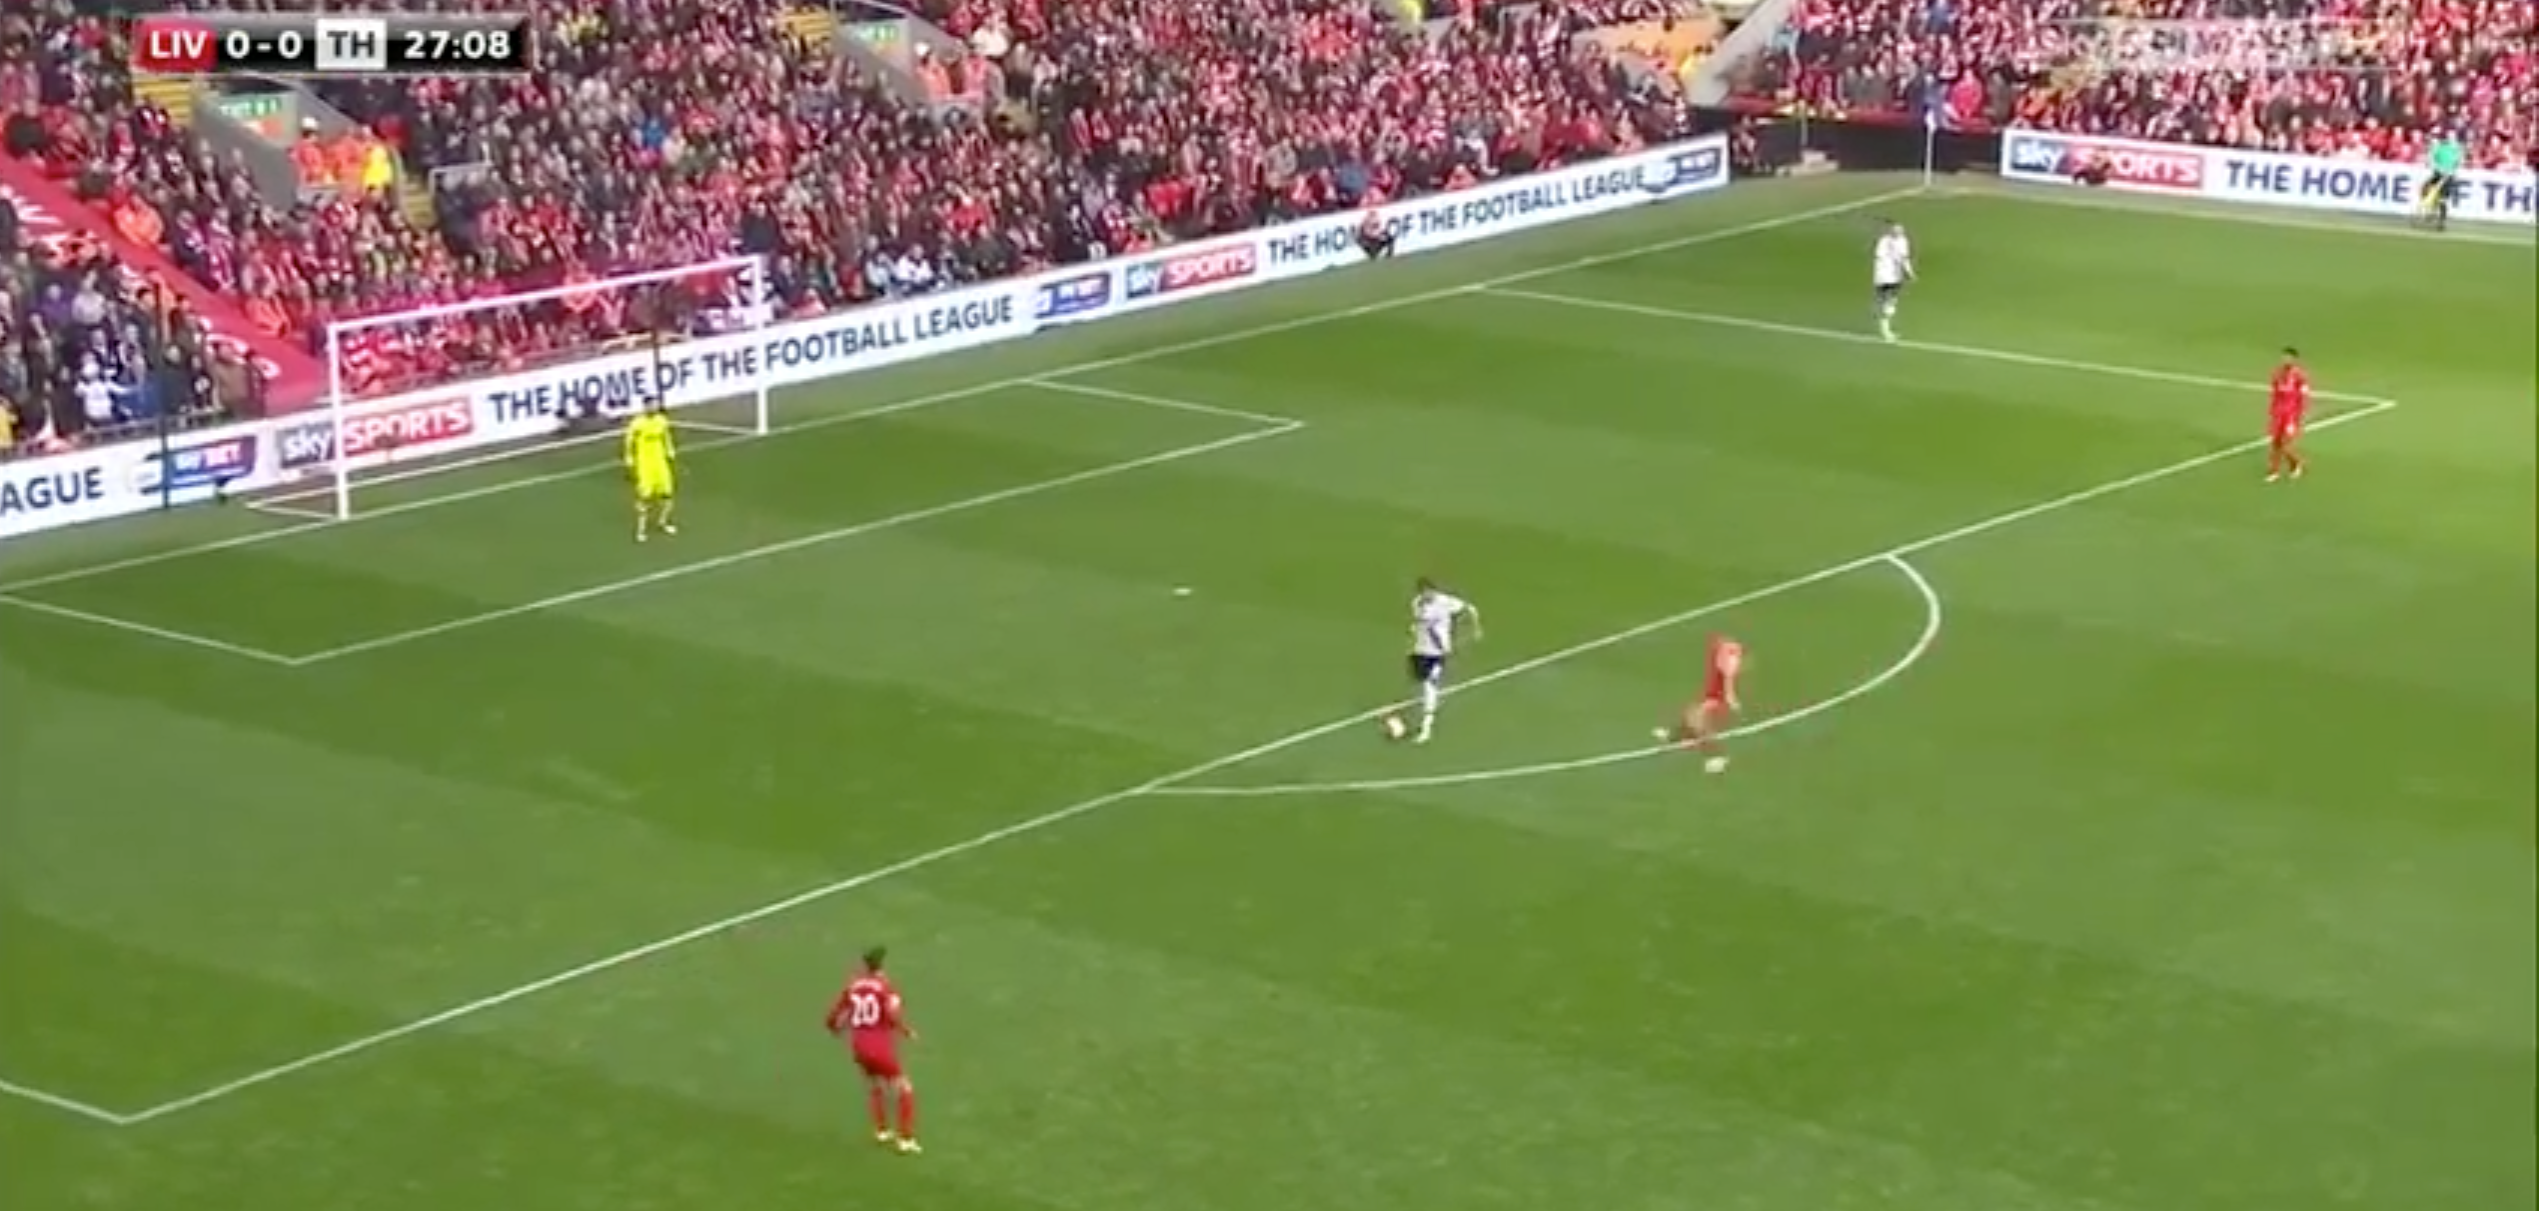 Jordan Henderson immediately applies pressure and forces Dier into making a quick decision to play the ball out wide.